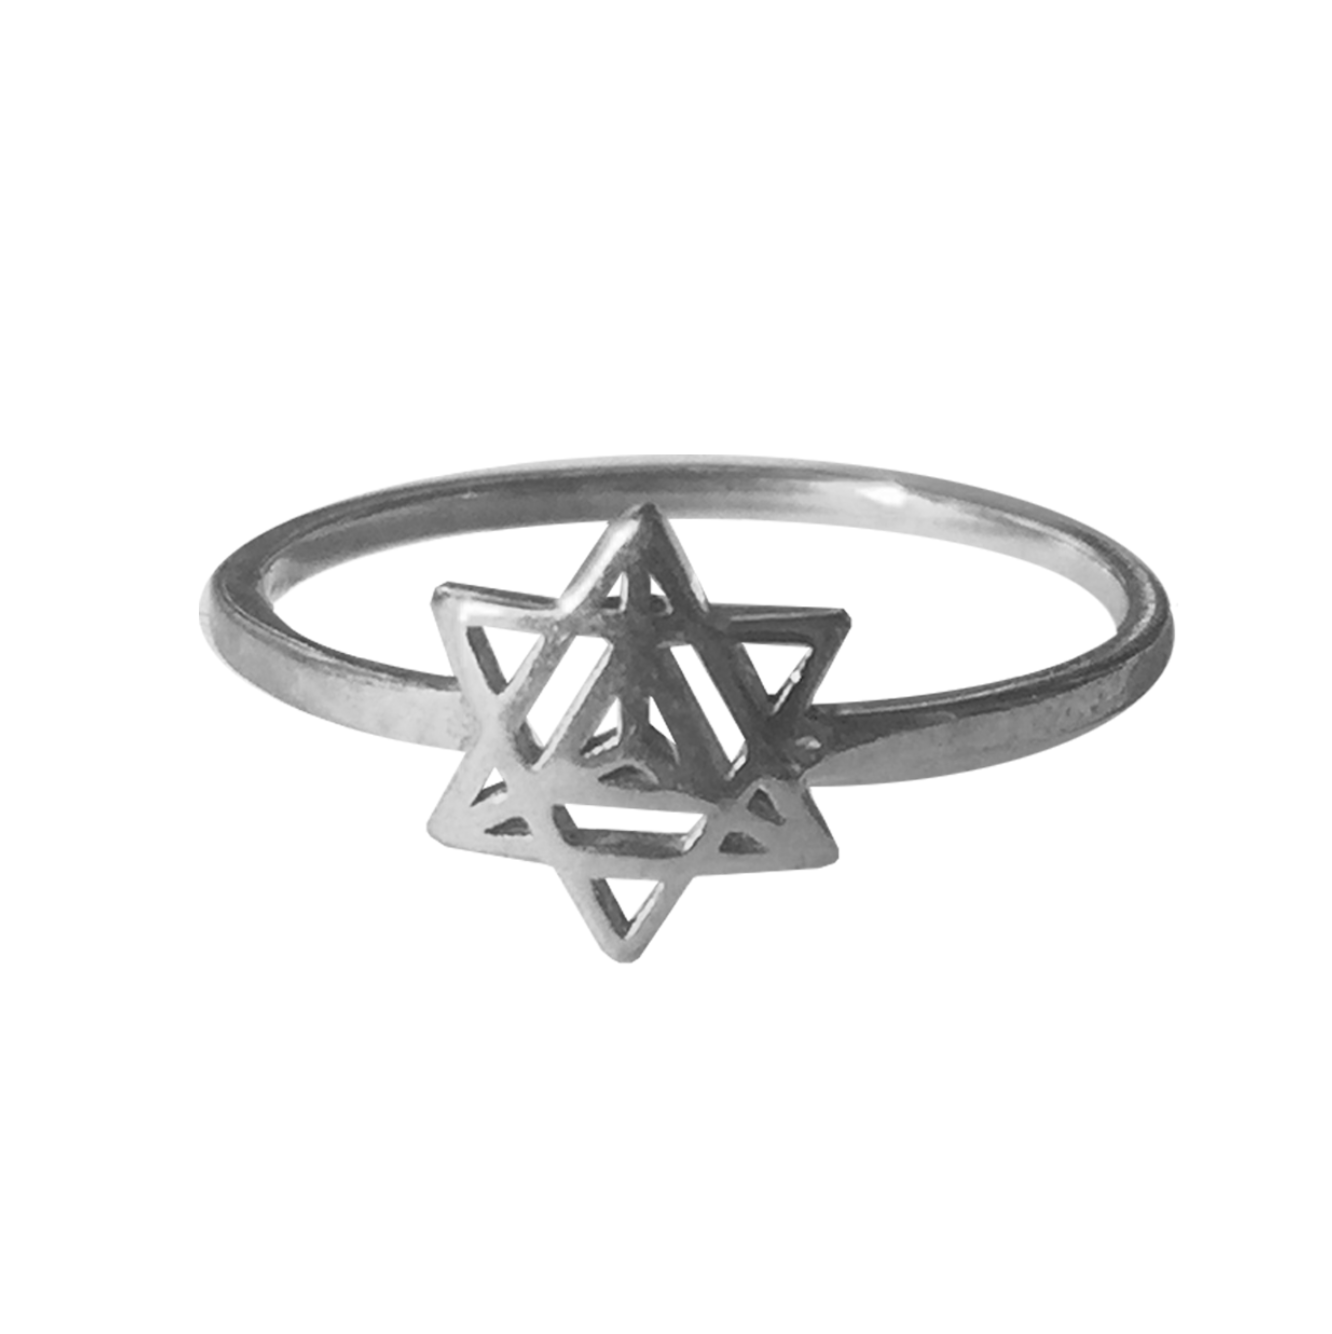 WIRE RING SIX SIDED STAR — VERAMEAT